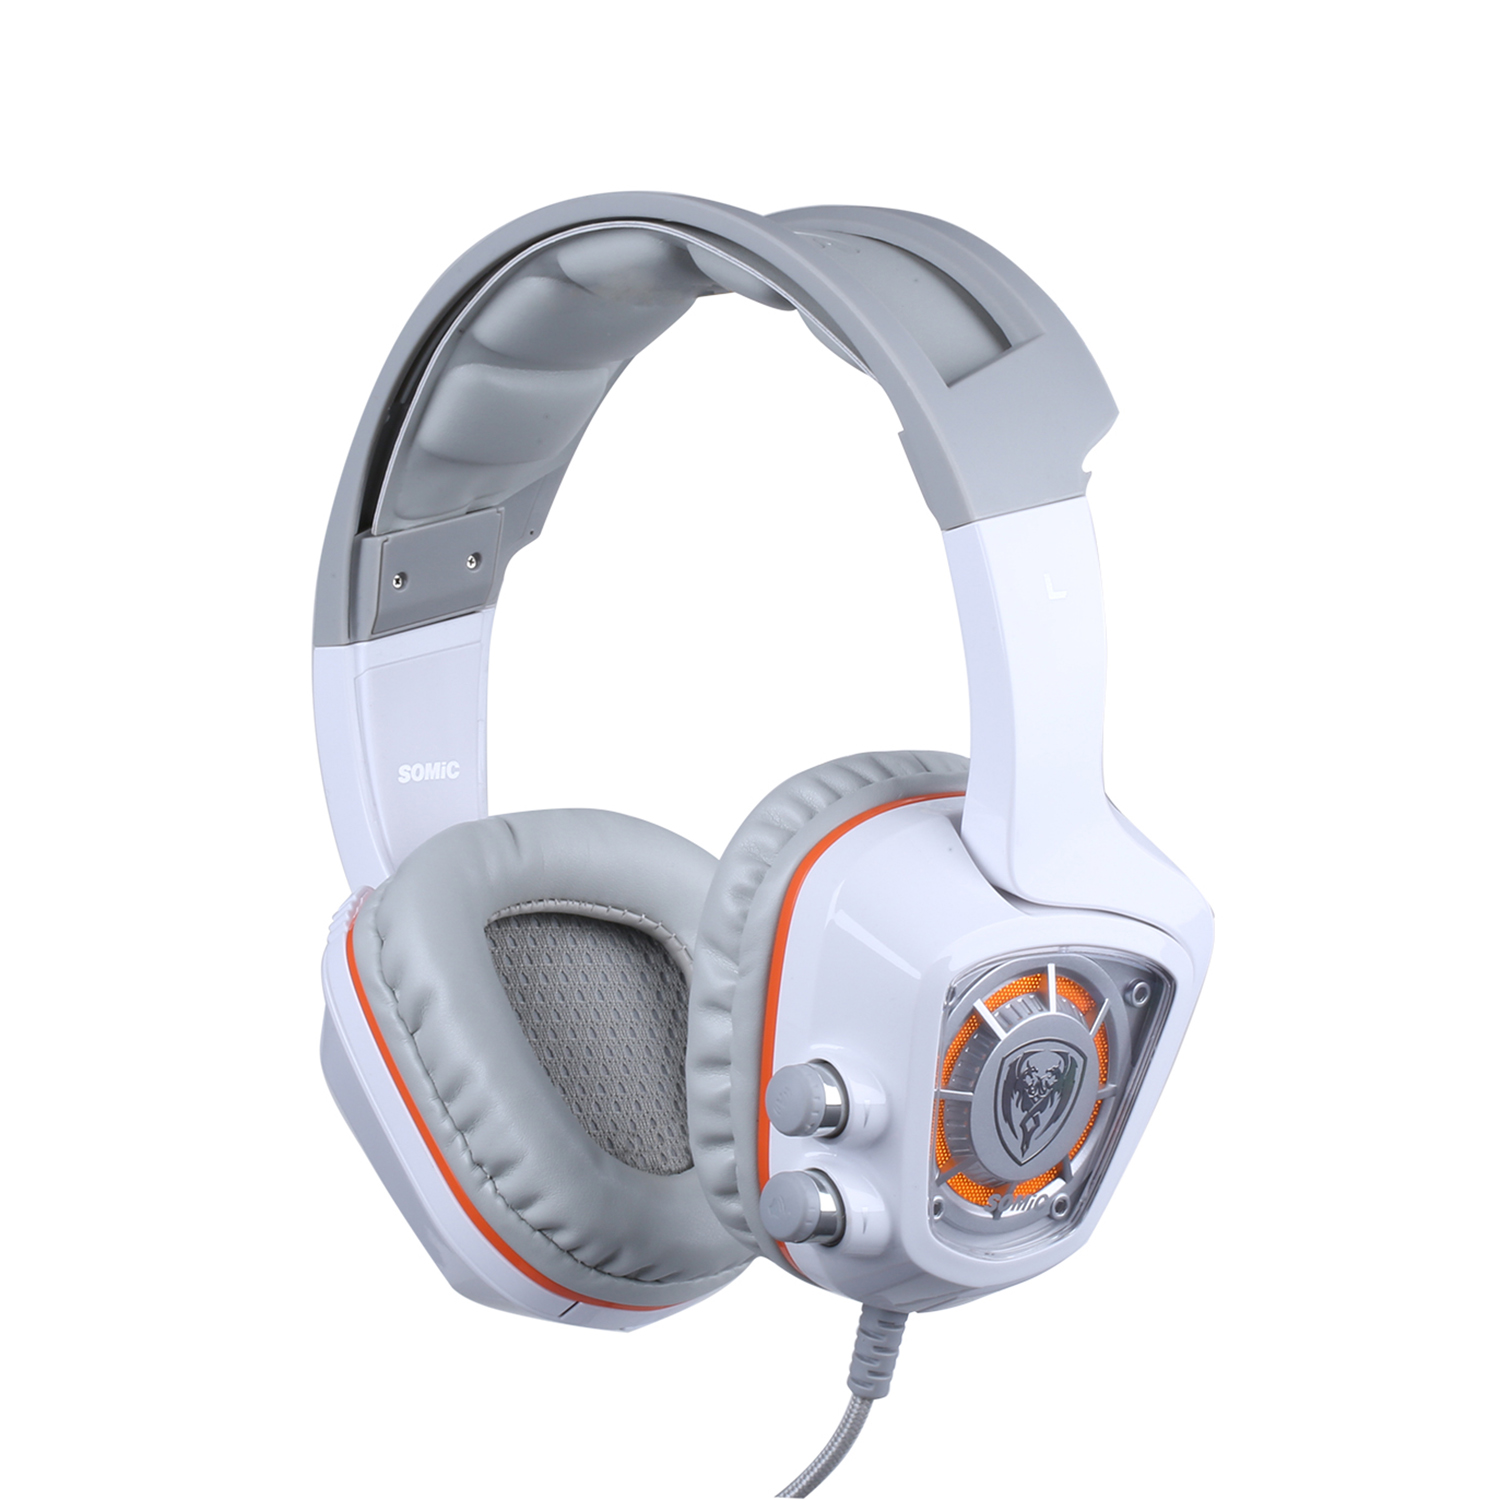 HFES New SOMiC G910 Original USB 7.1 Surround Sound Gaming Headset with Mic LED light Smart Vibration Over-ear PC Headphone Du купить в Москве 2019